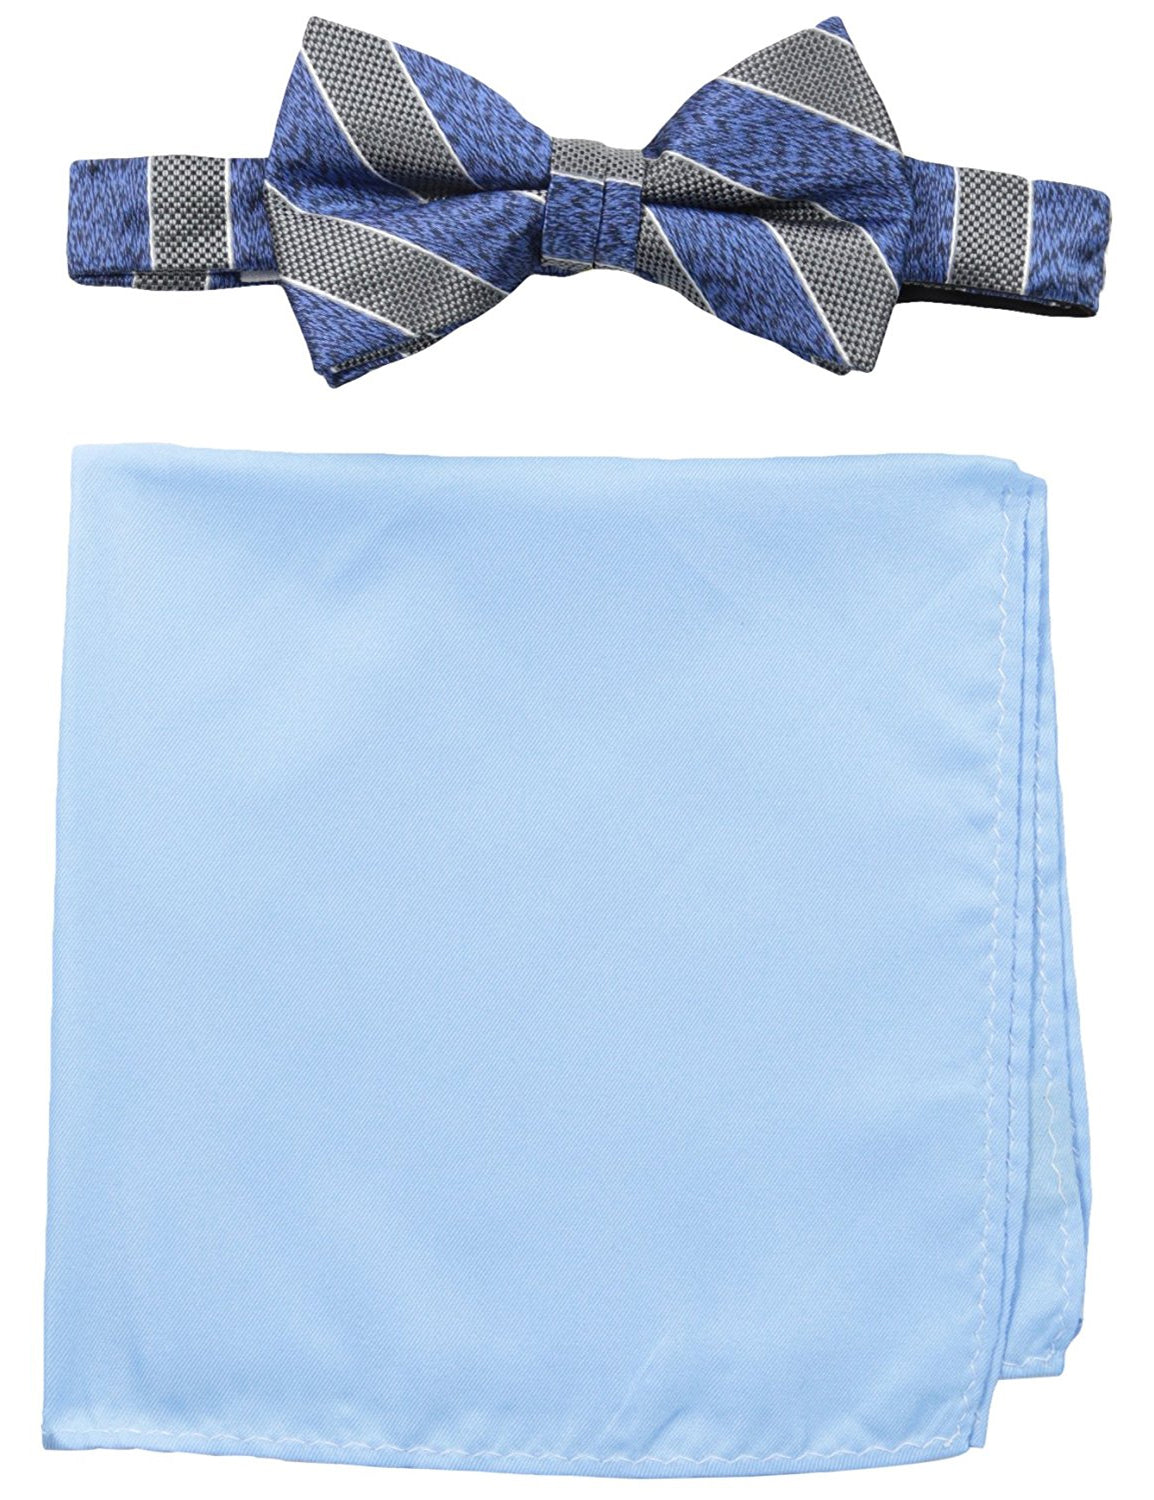 Stripe Bow Tie with Pocket Square